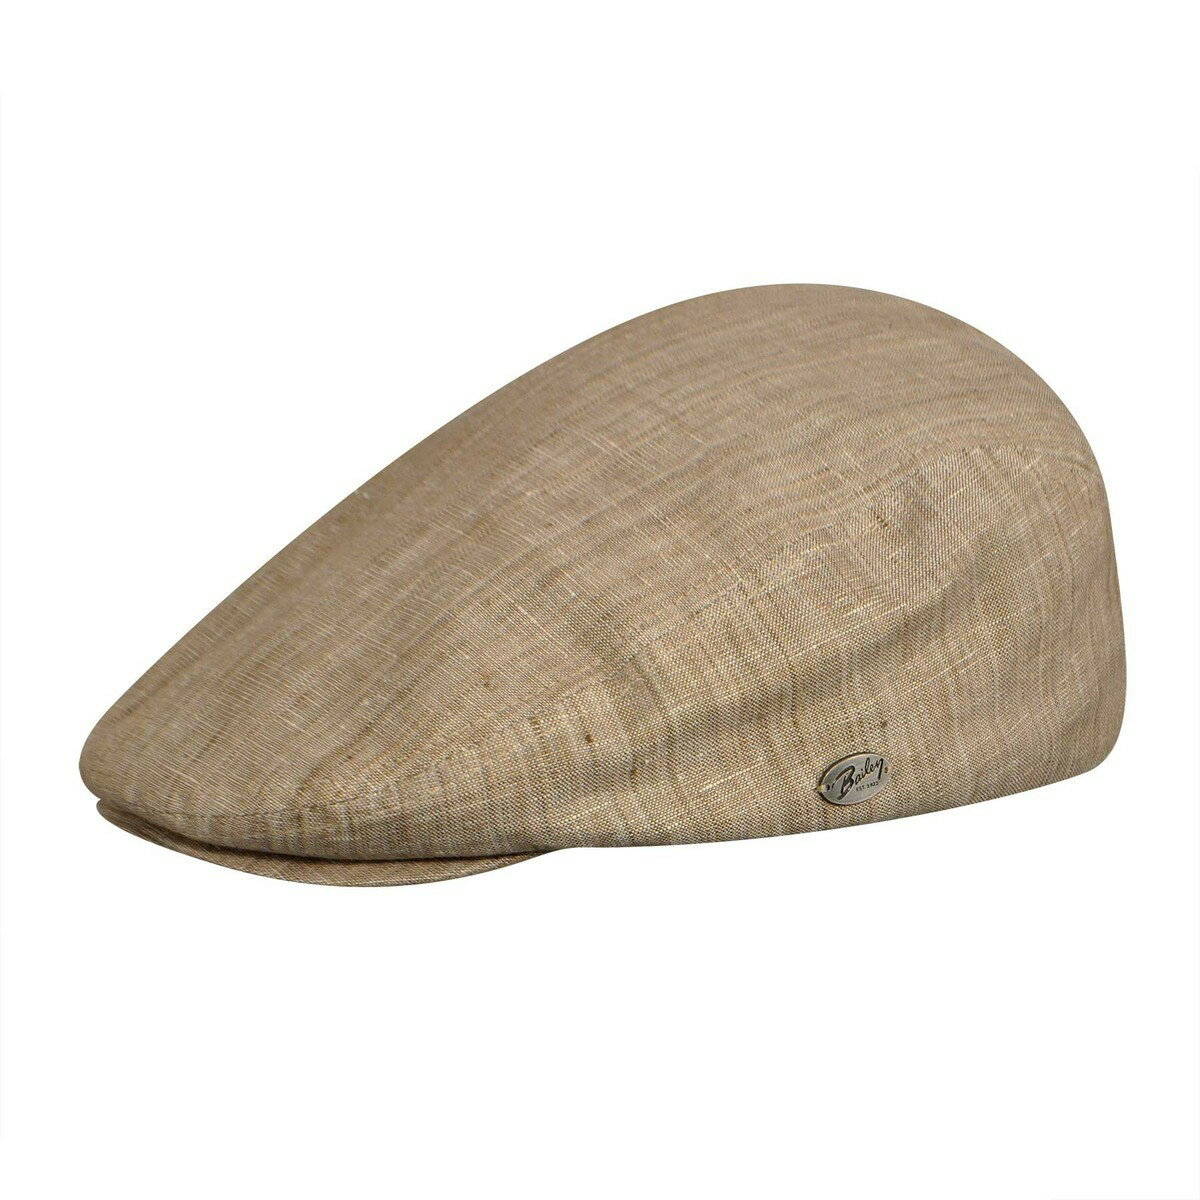 Bailey of Hollywood Harston Cap Grass Ivy Caps & Flat Caps 帽子 Grass